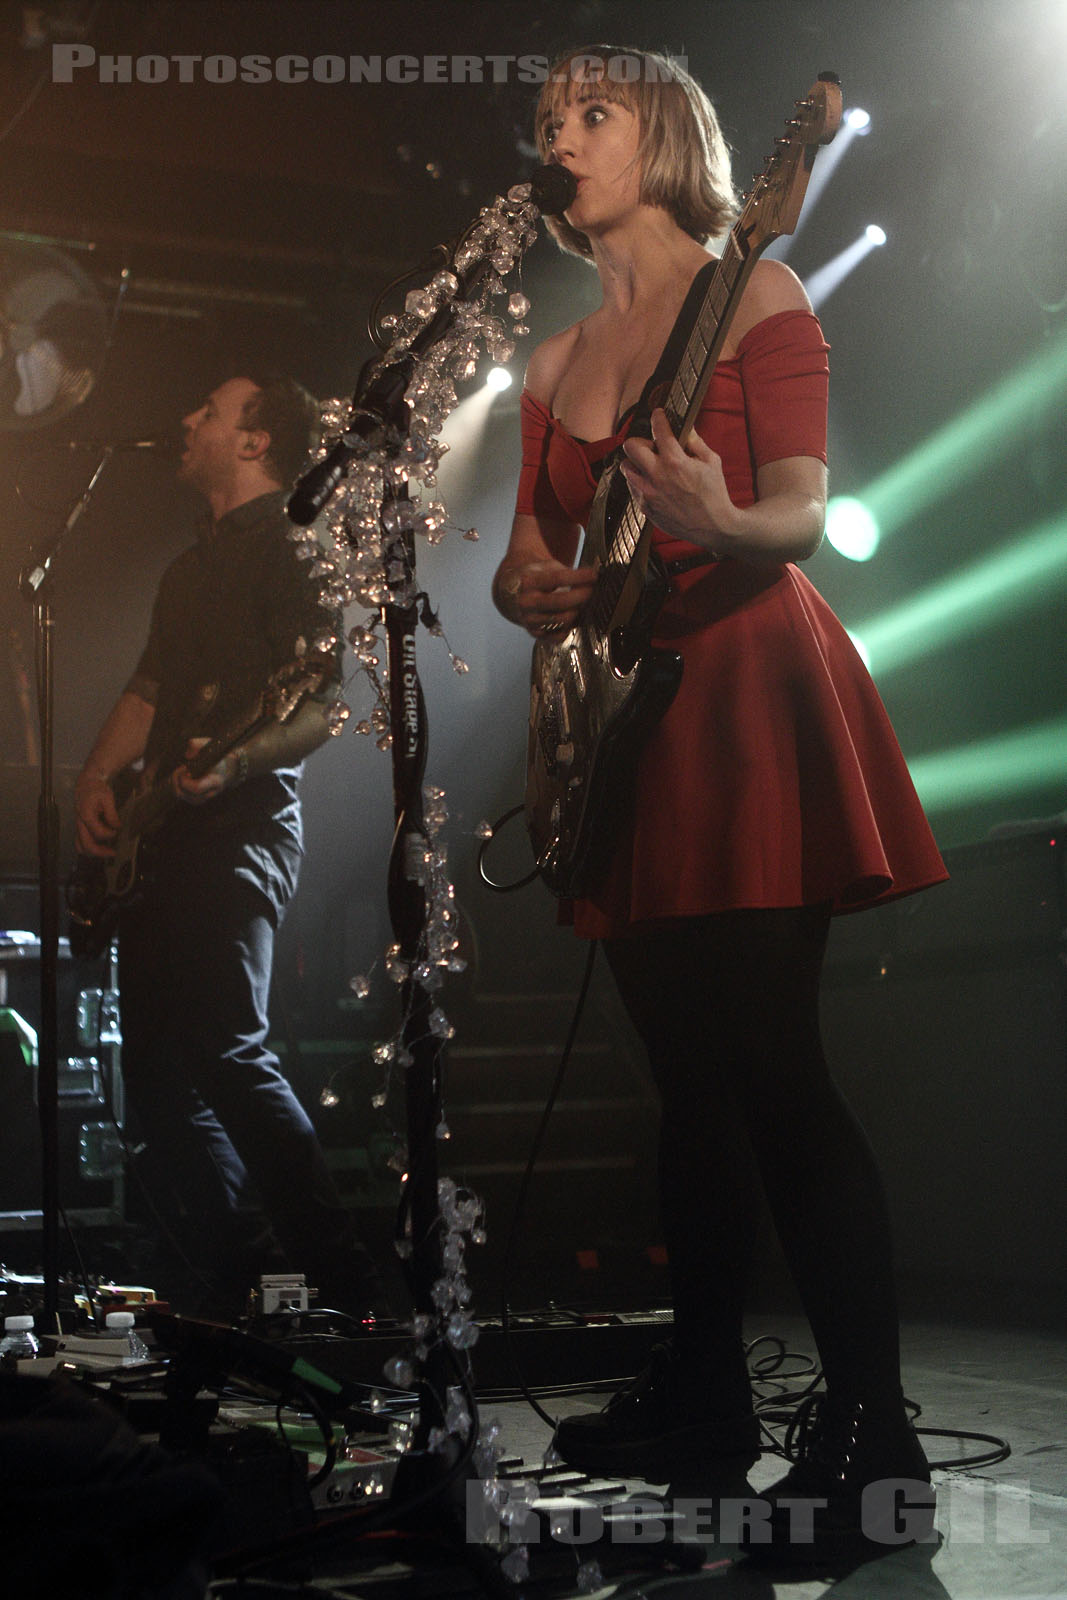 THE JOY FORMIDABLE - 2013-02-12 - PARIS - La Maroquinerie